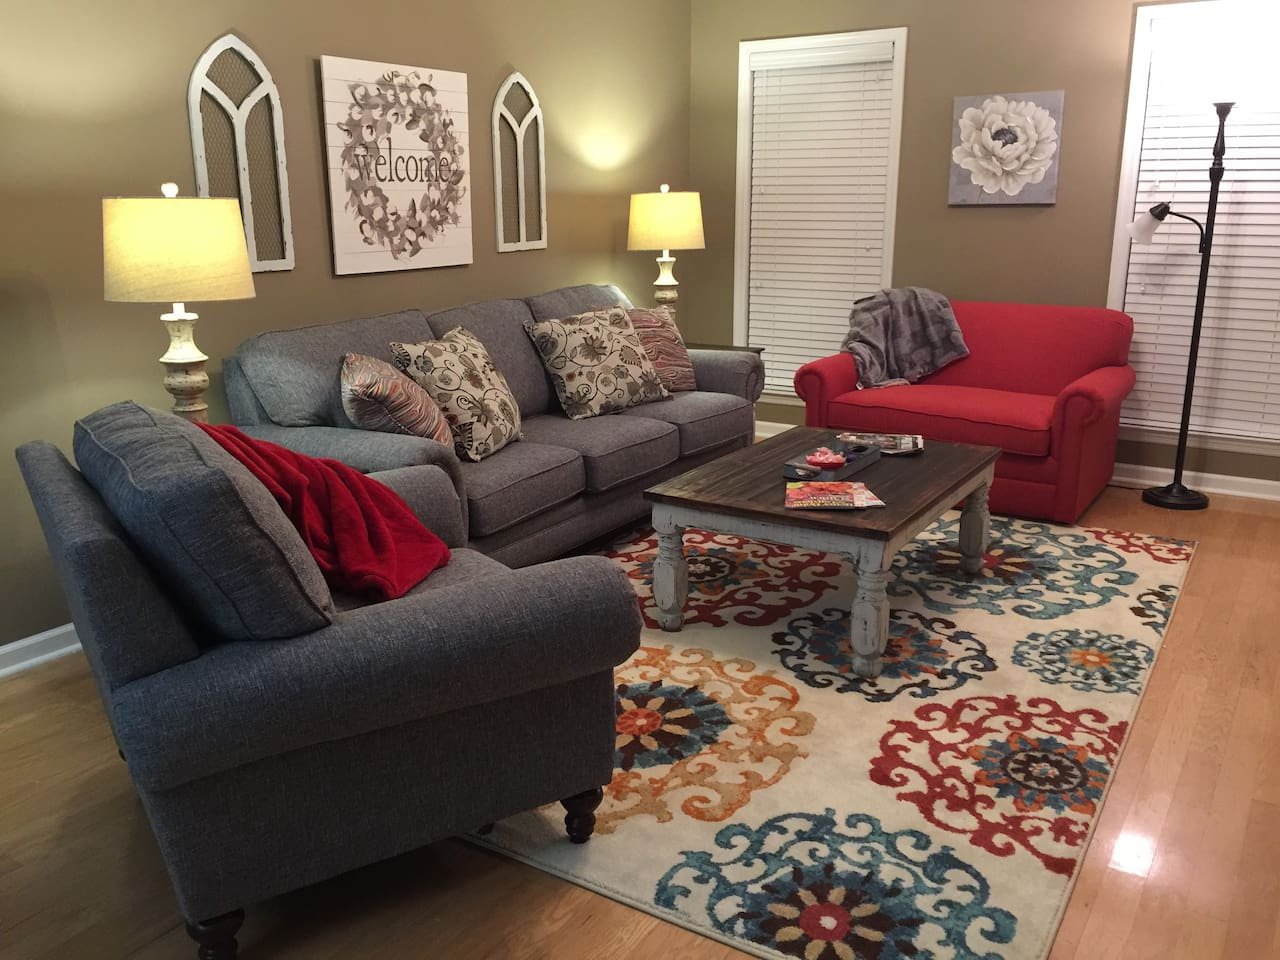 Den with sleeper twin bed in red chair